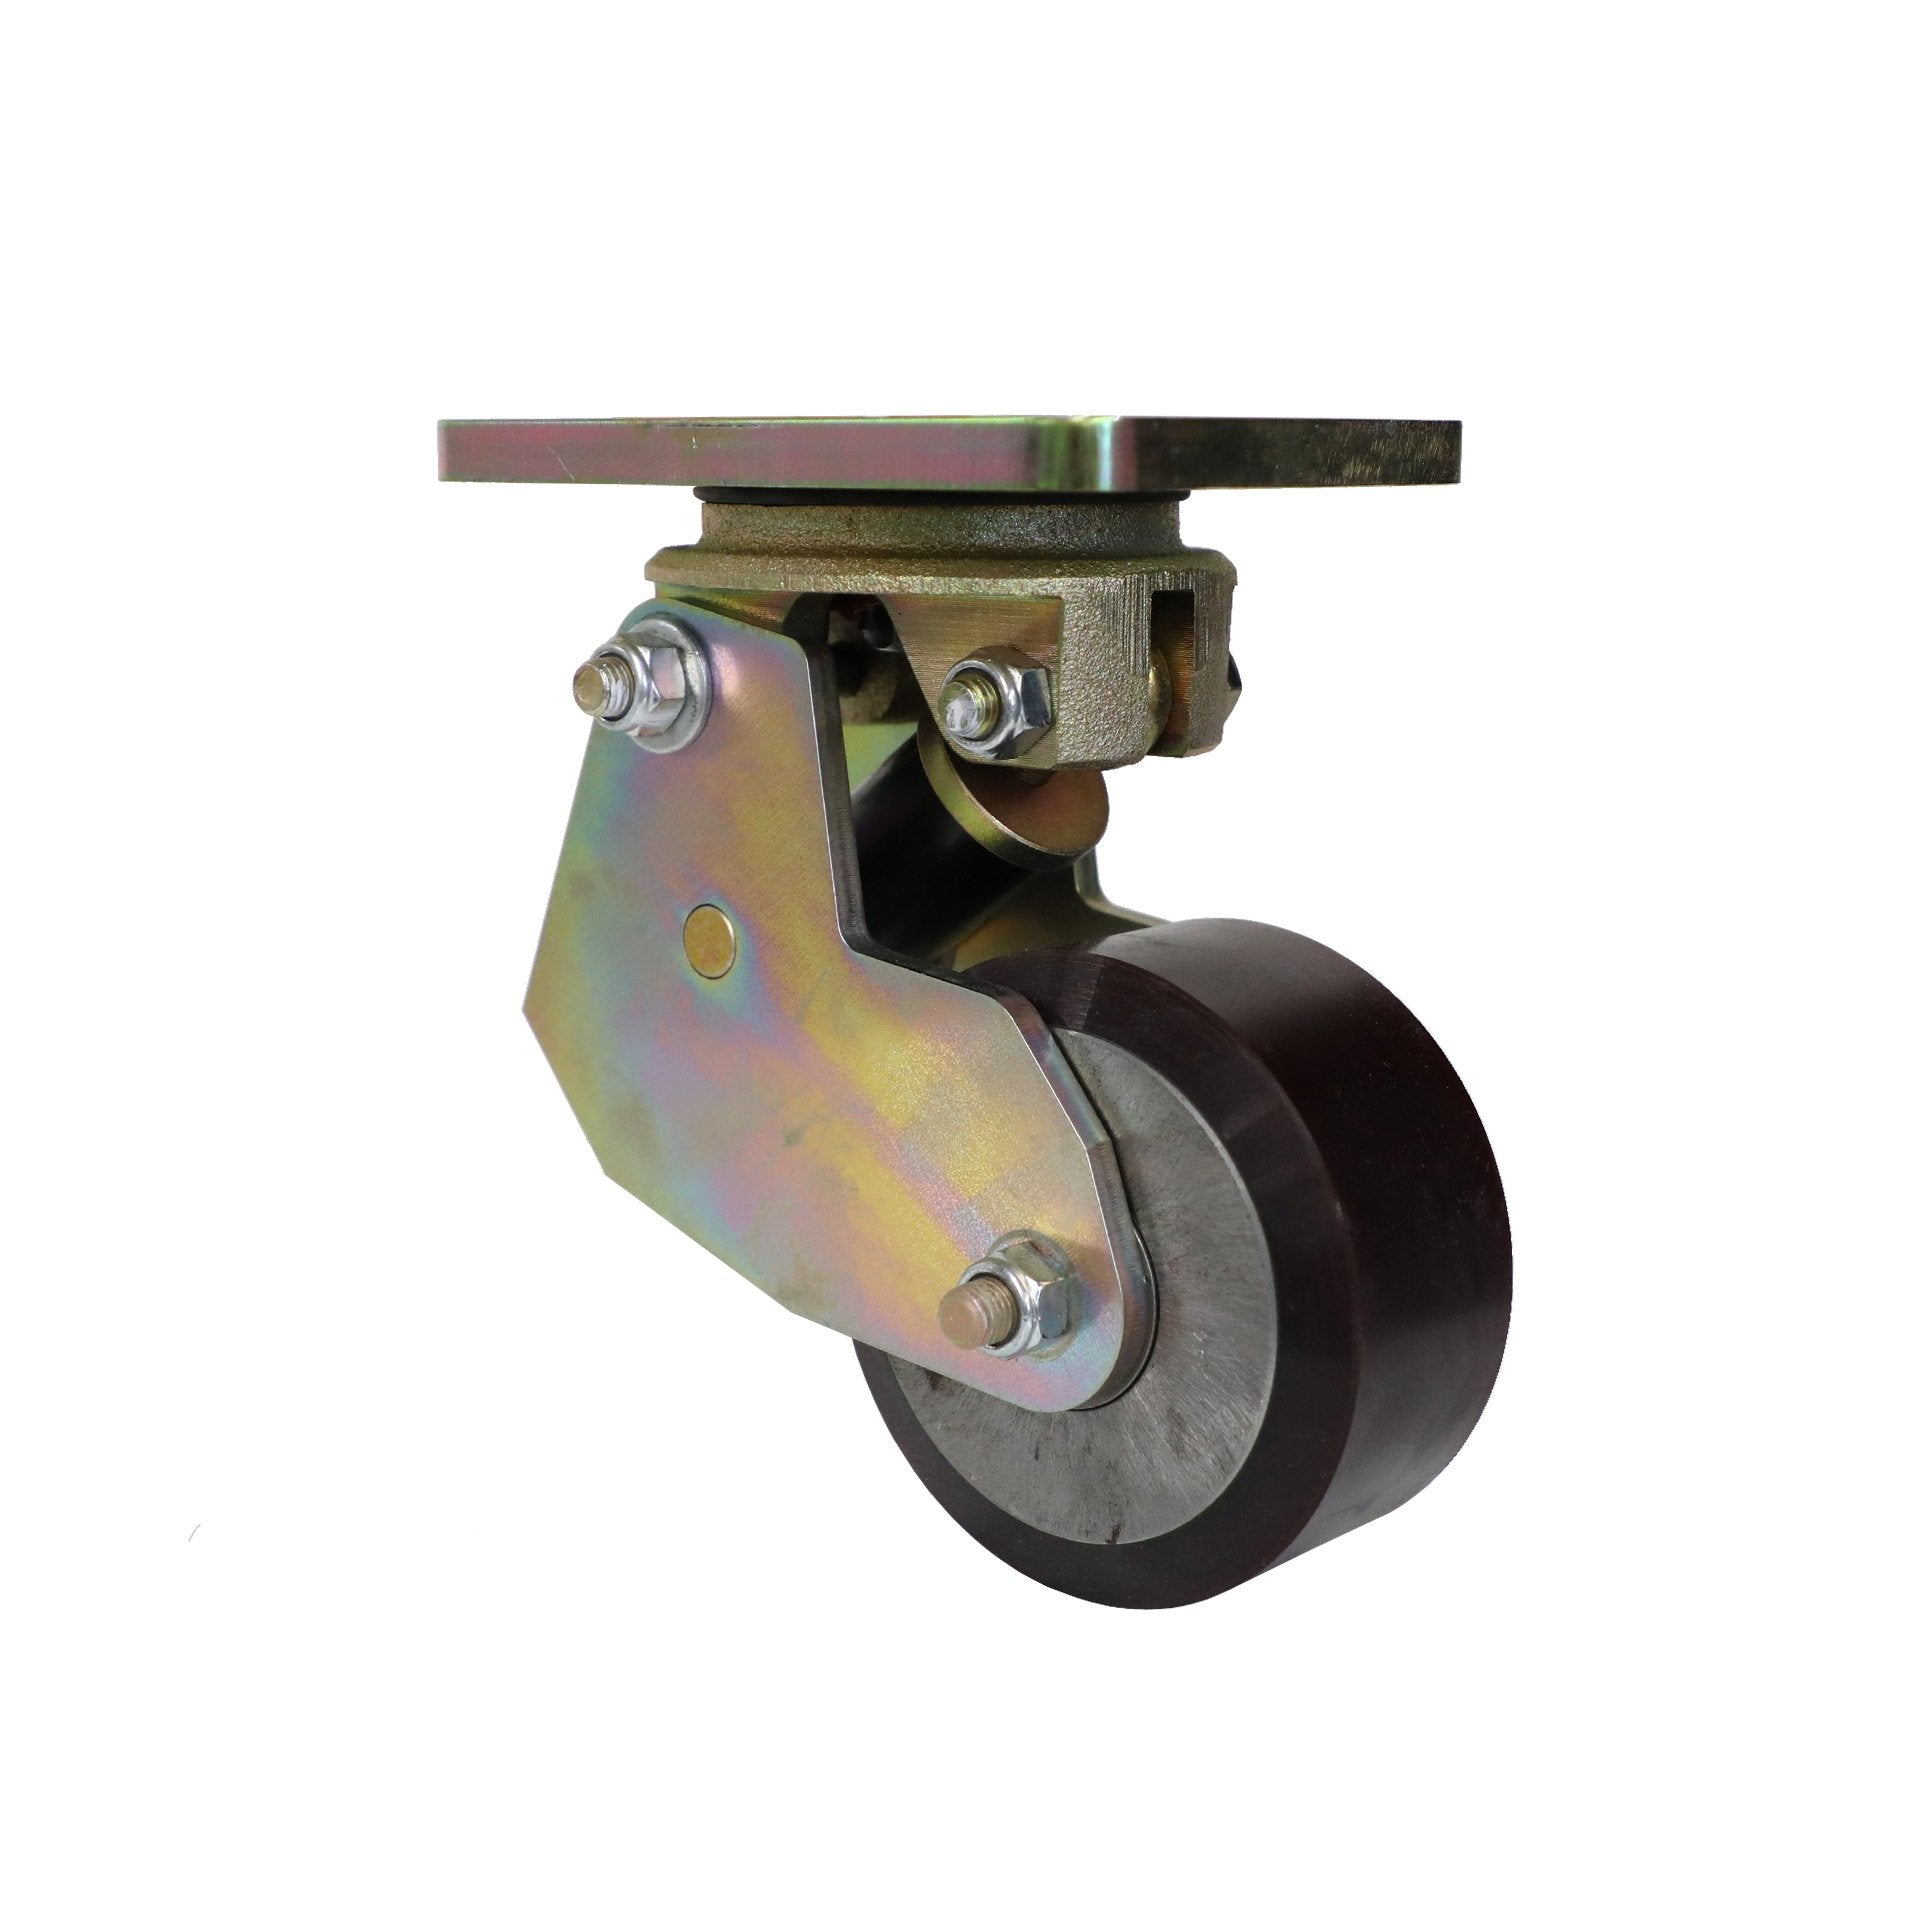 6k Side Adjust STD Poly Spring V2 5x2 Wheel Caster SKU: 43380-FS005